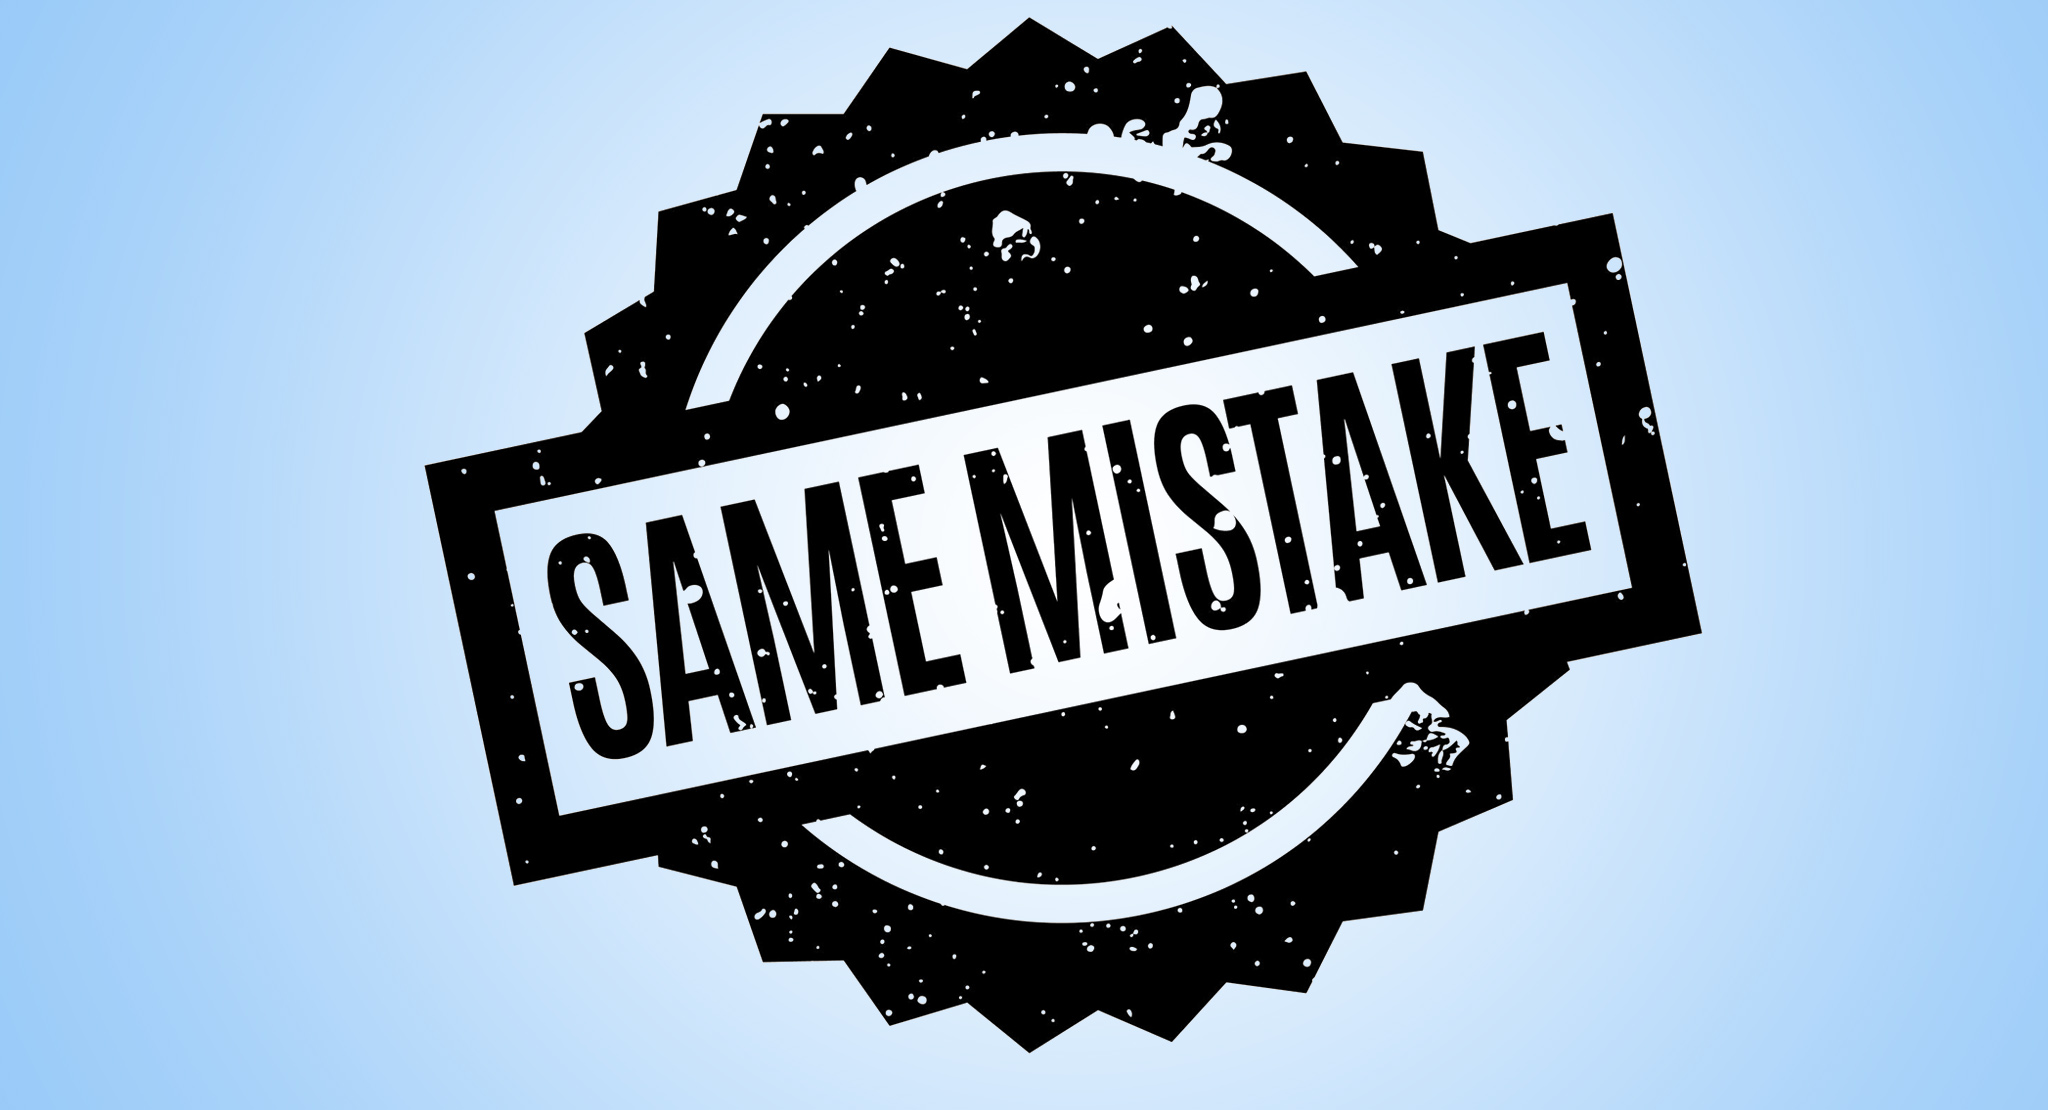 people doing same mistake over and over again